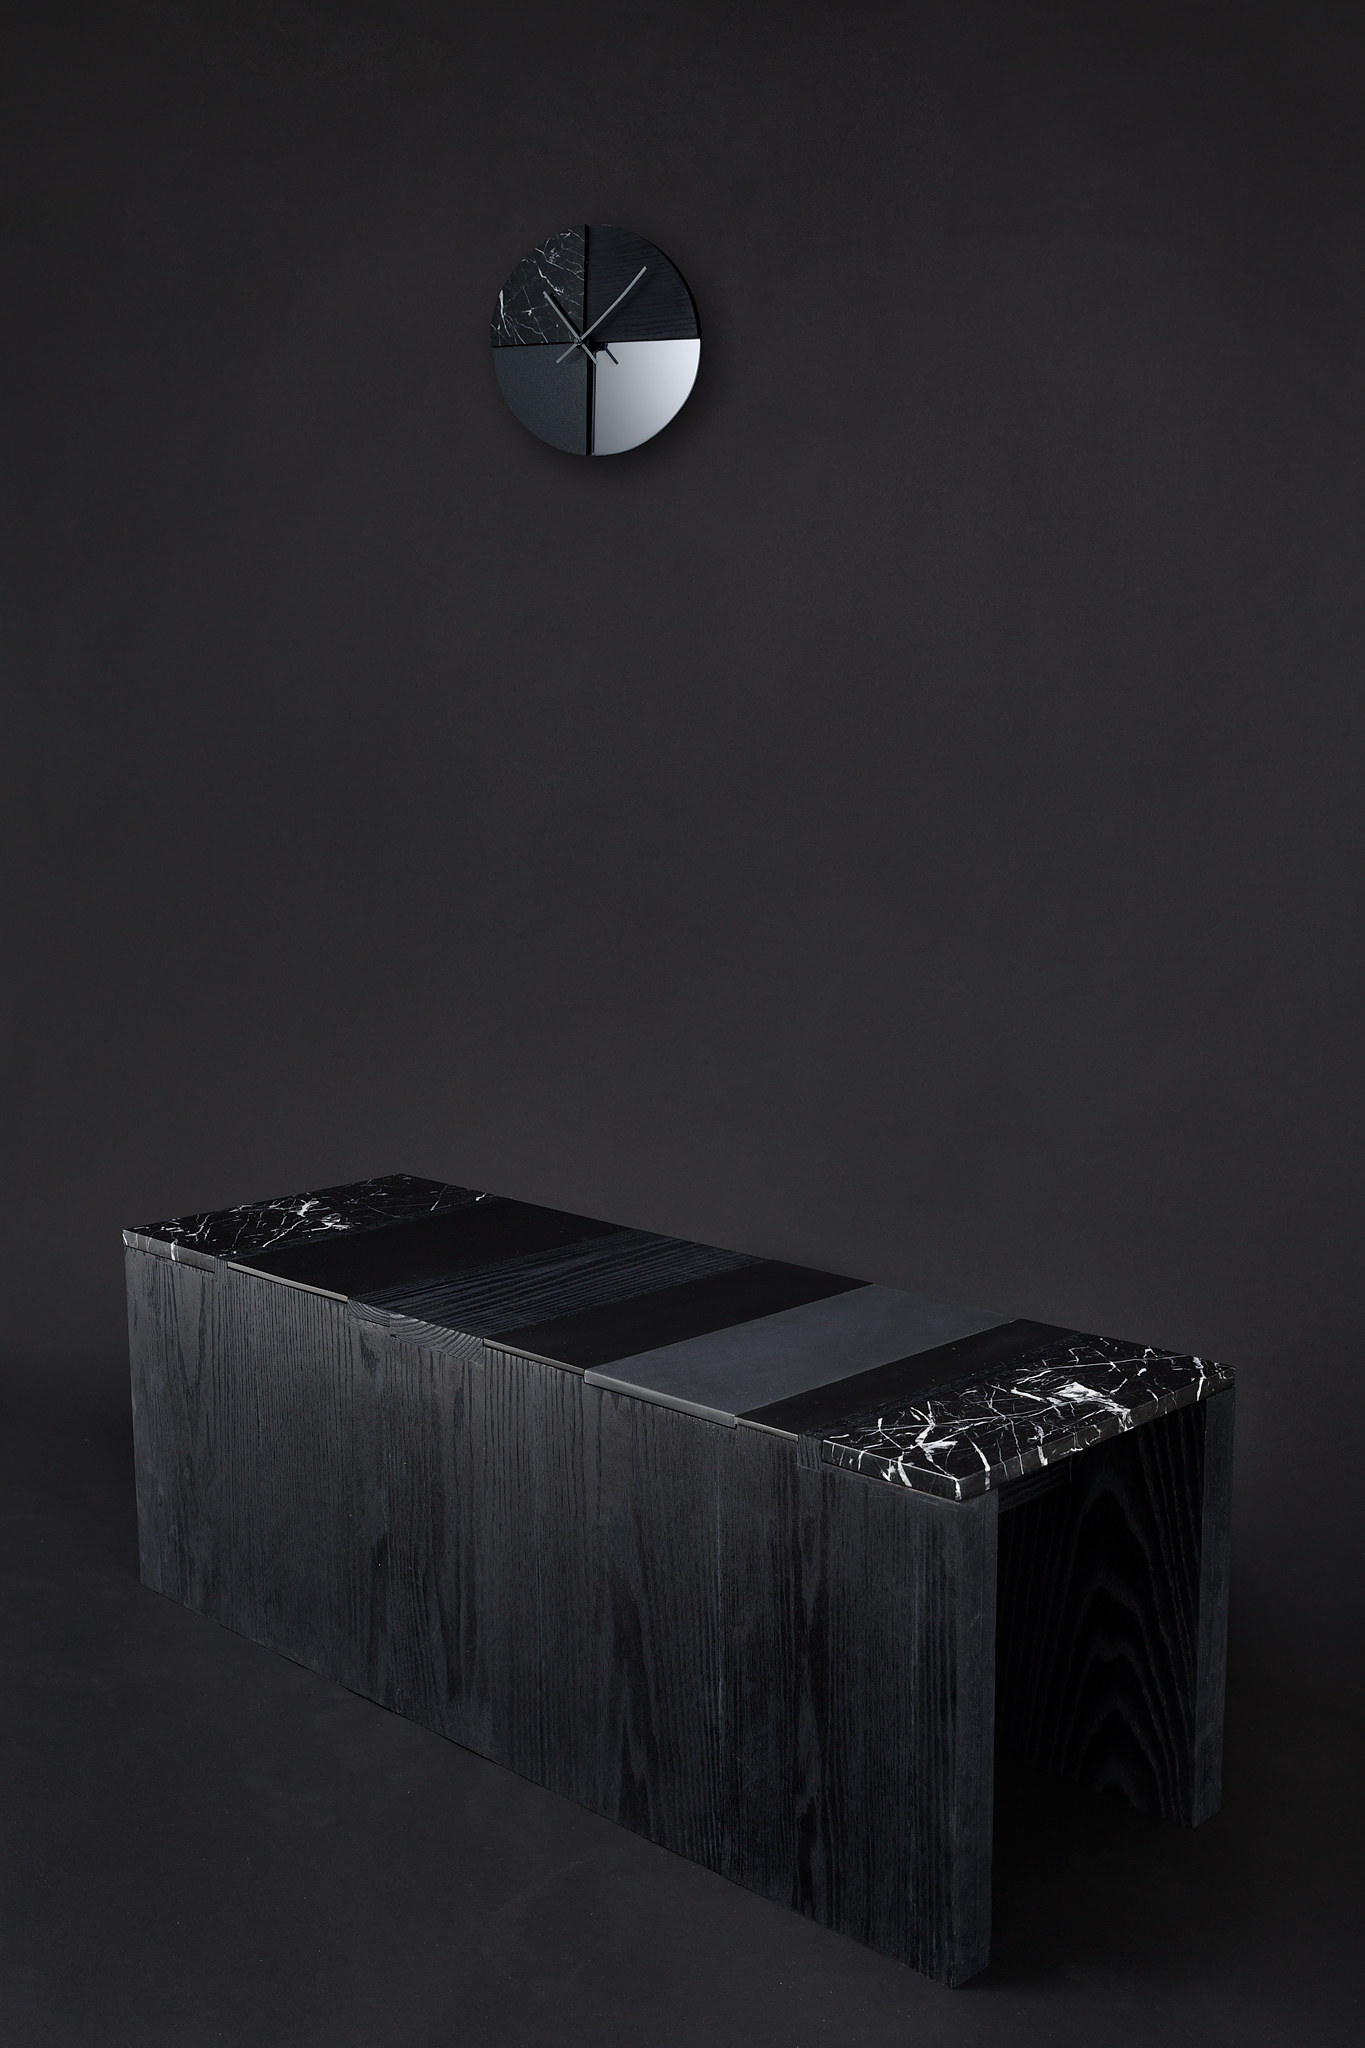 MONO Wall Clock by Cooperativa Panoràmica.